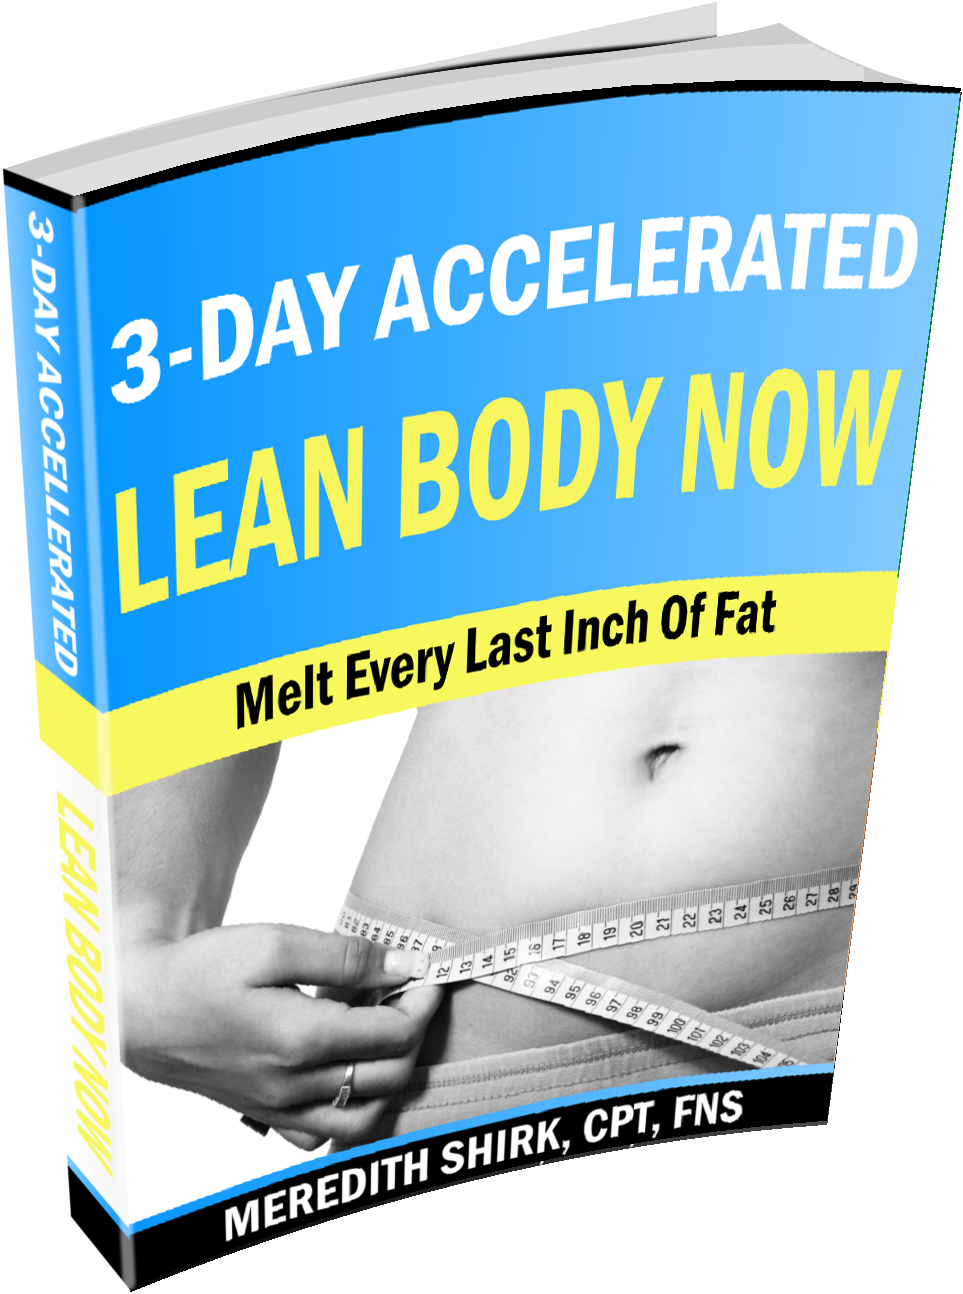 3-day-accelerated-lean-body-now-3d-cover